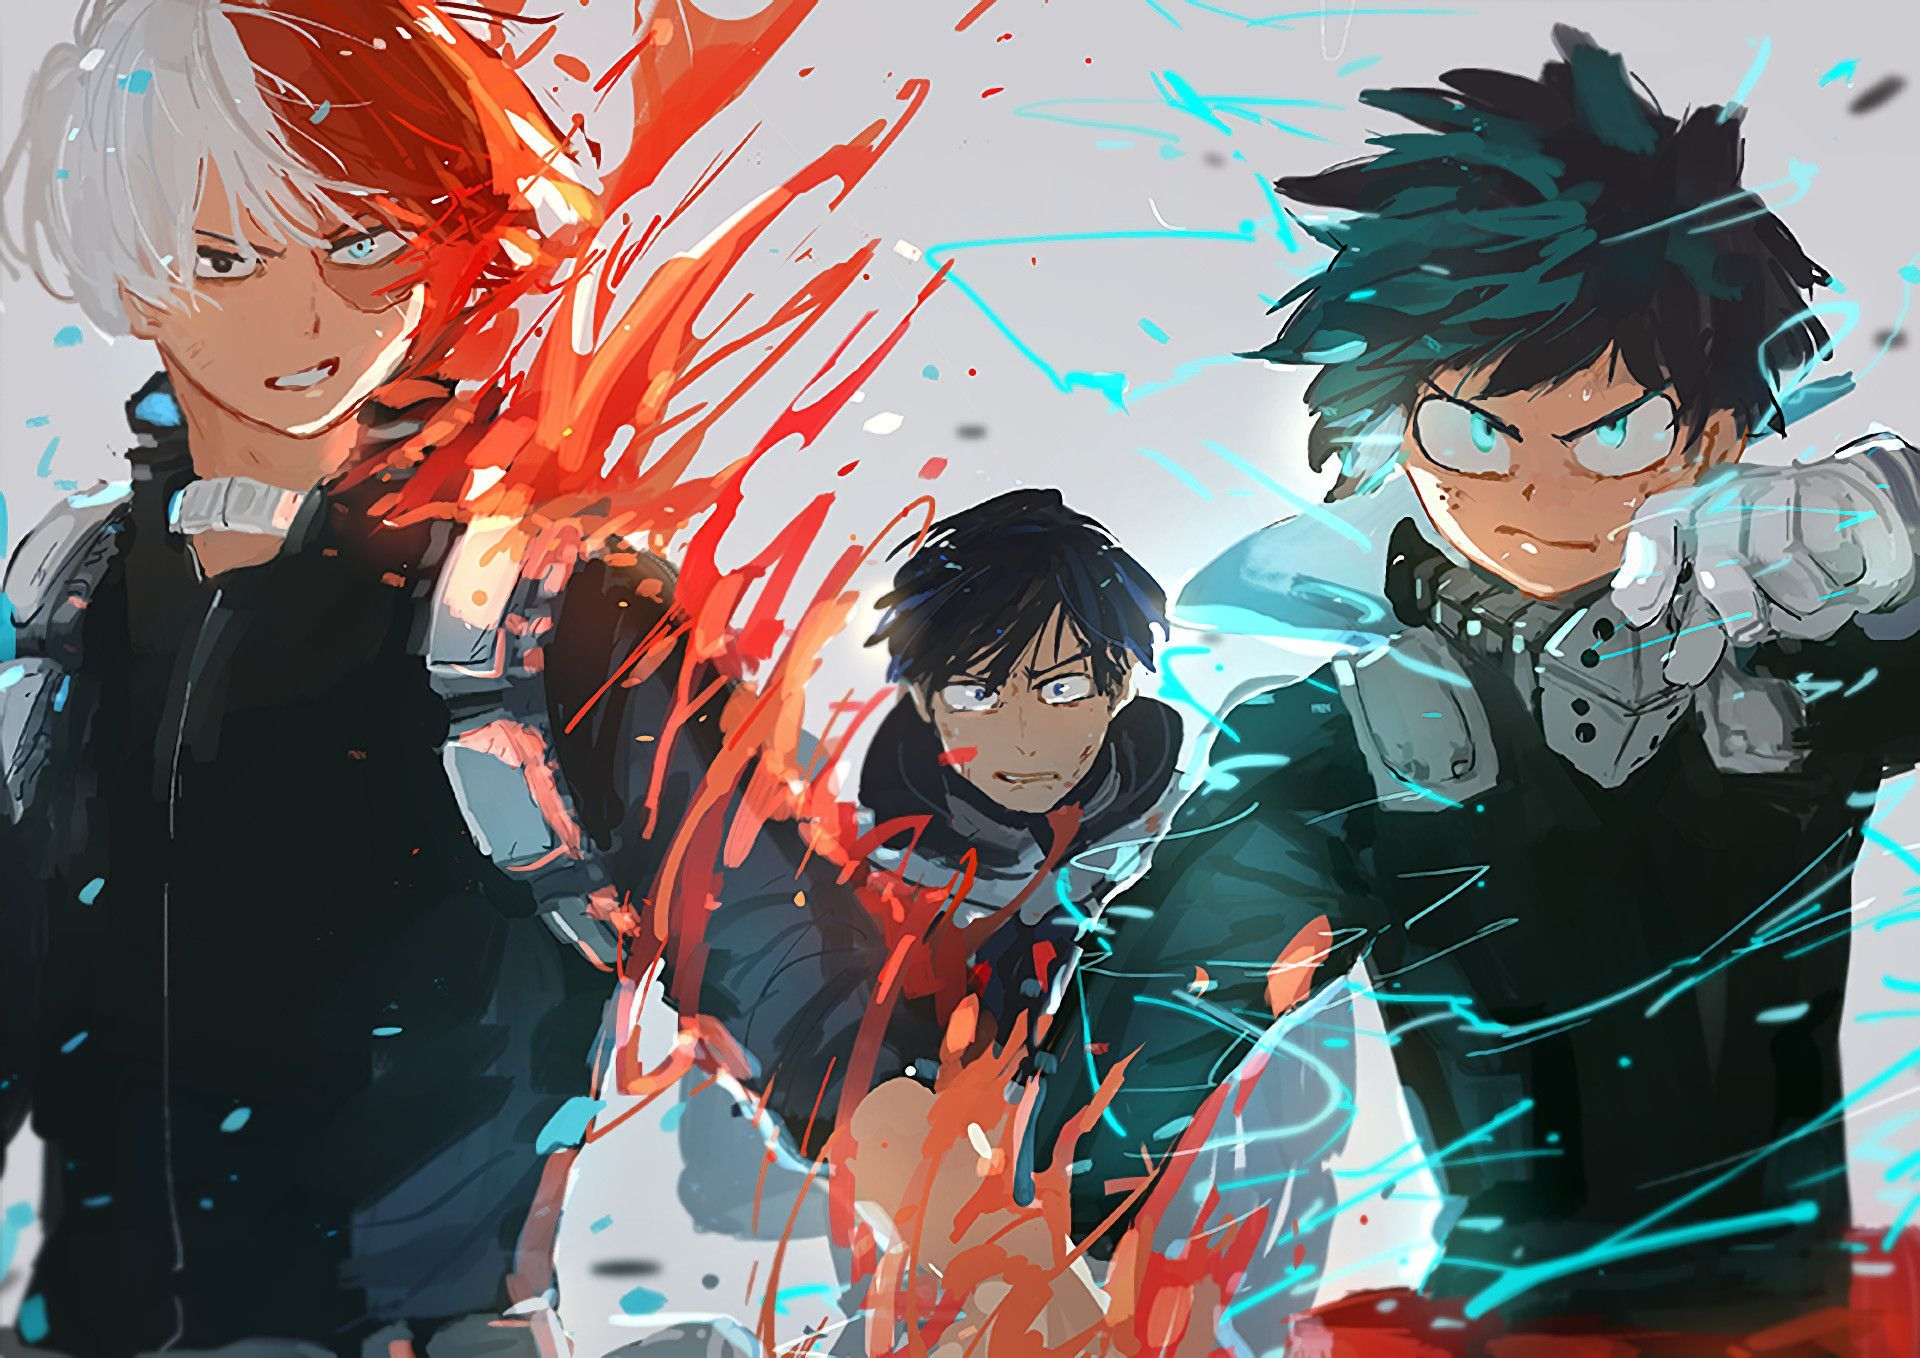 Deku Kacchan Todoroki Boku No Hero Academy Wallpapers Anime